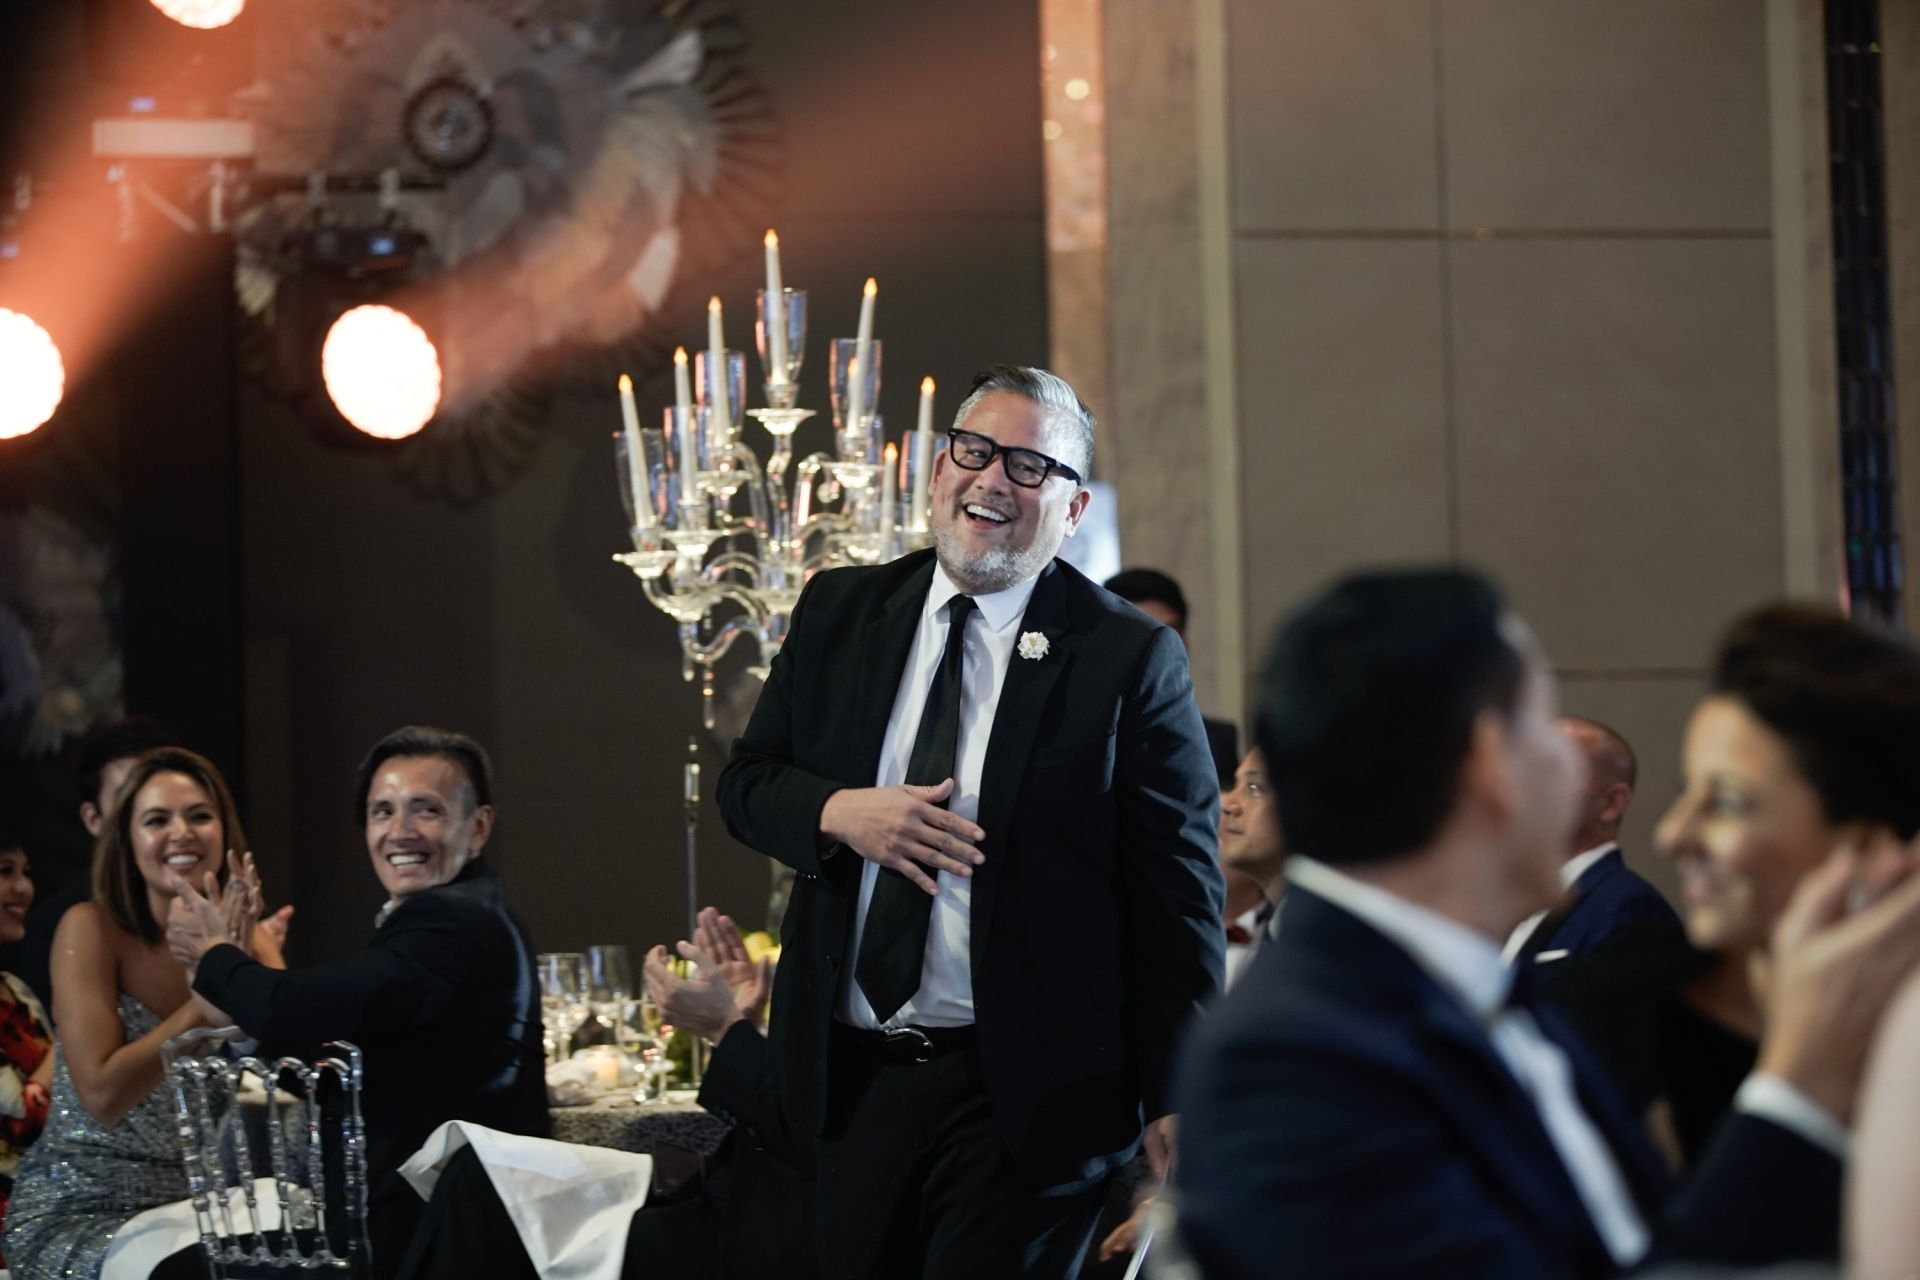 Rajo Laurel makes his way to the stage to receive his award as Most Creative Force 2018 | He received a staycation package courtesy of Shangri La Boracay.